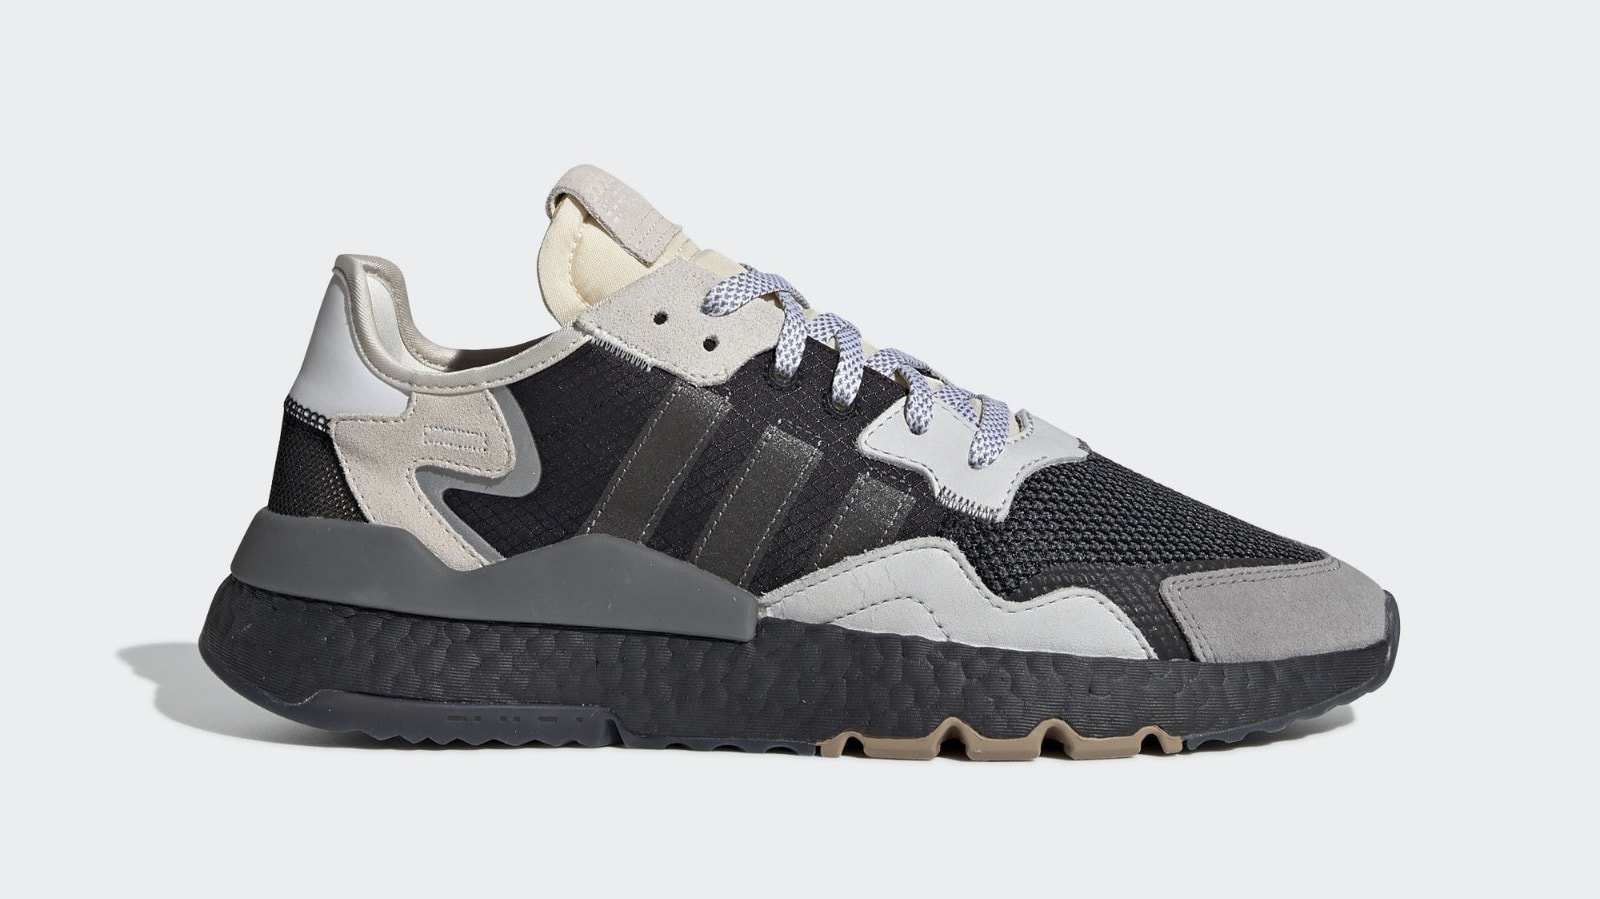 ca4ce9e4a036 The adidas Nite Jogger is finally here. After launching to plenty of  fanfare early this year